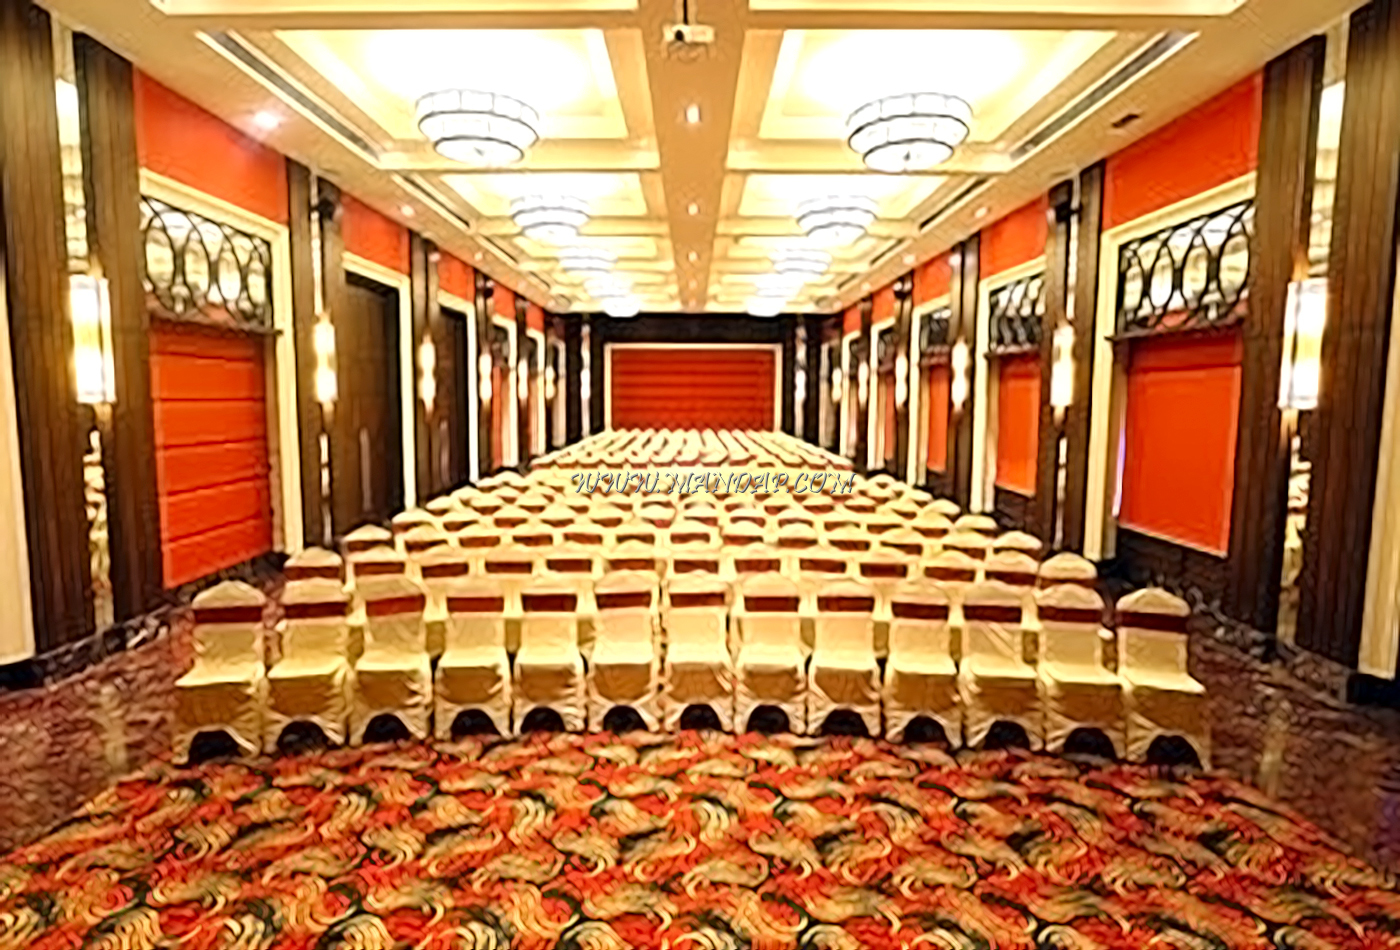 Find the availability of the Grand Serenaa Hotel Palio (A/C) in Thiruchitrambalam, Pondicherry and avail special offers